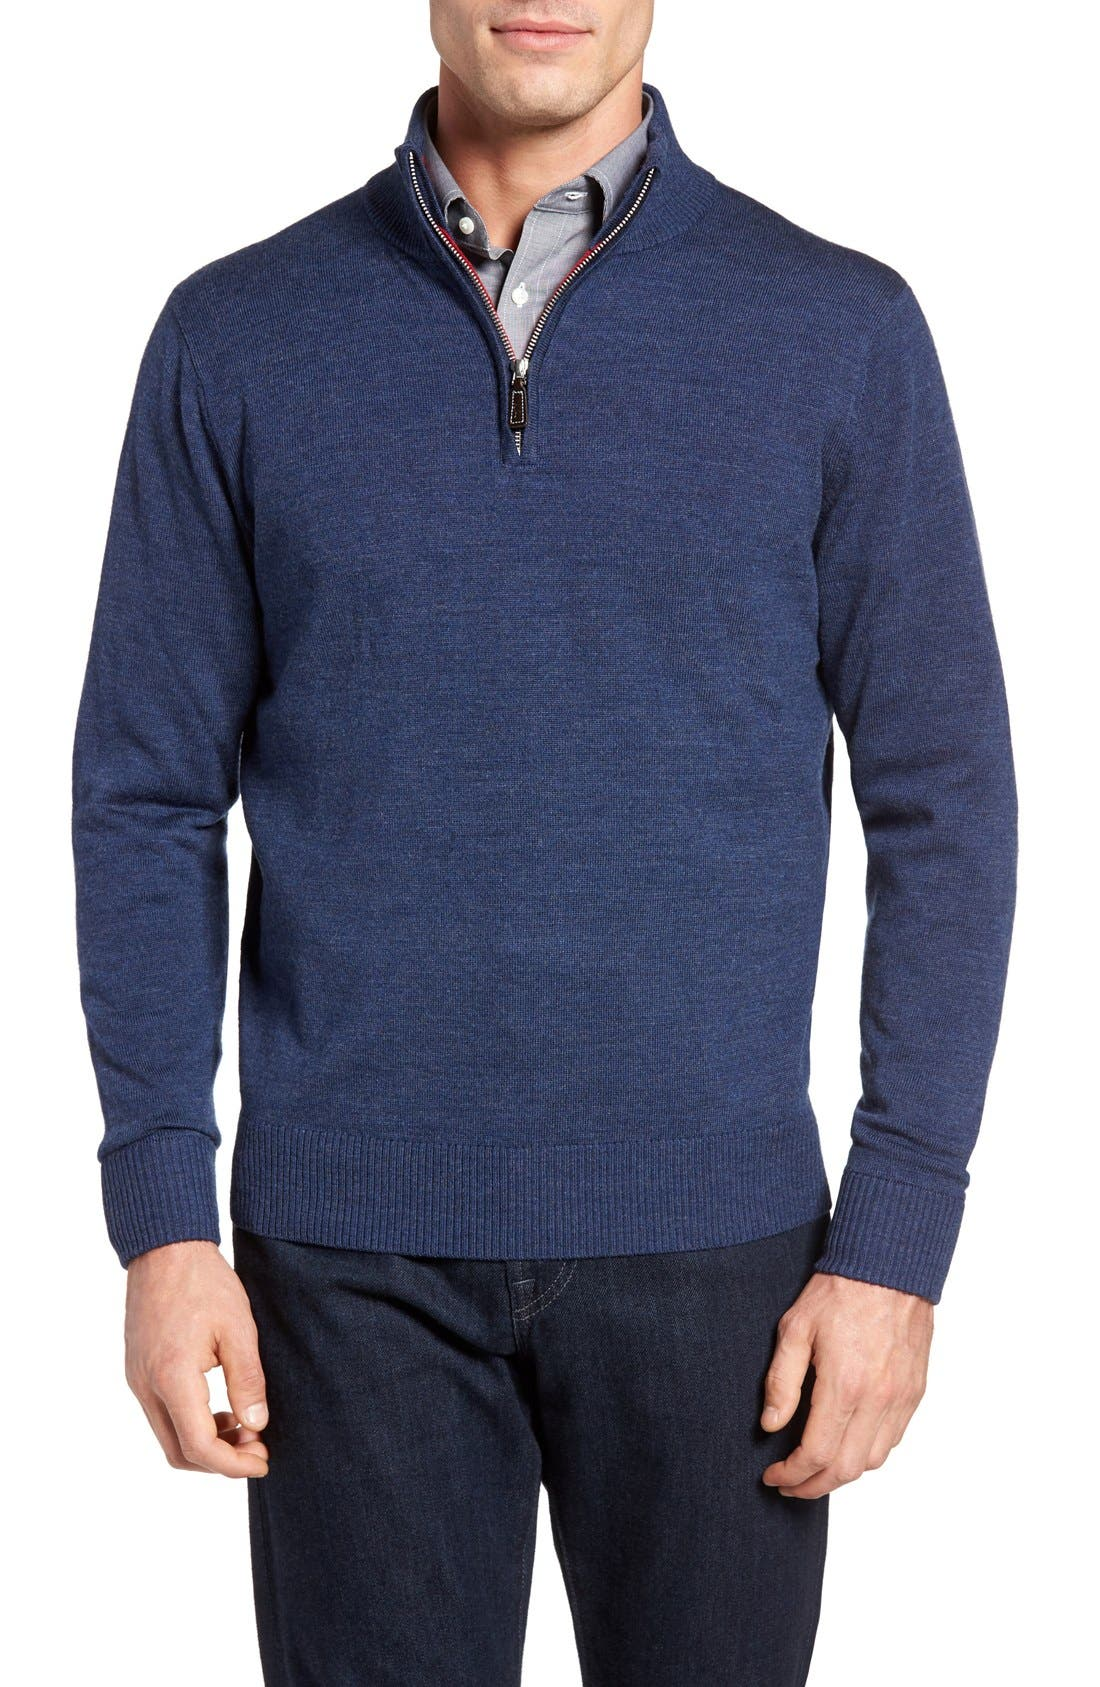 TailorByrd Nisqually Quarter Zip Wool Sweater